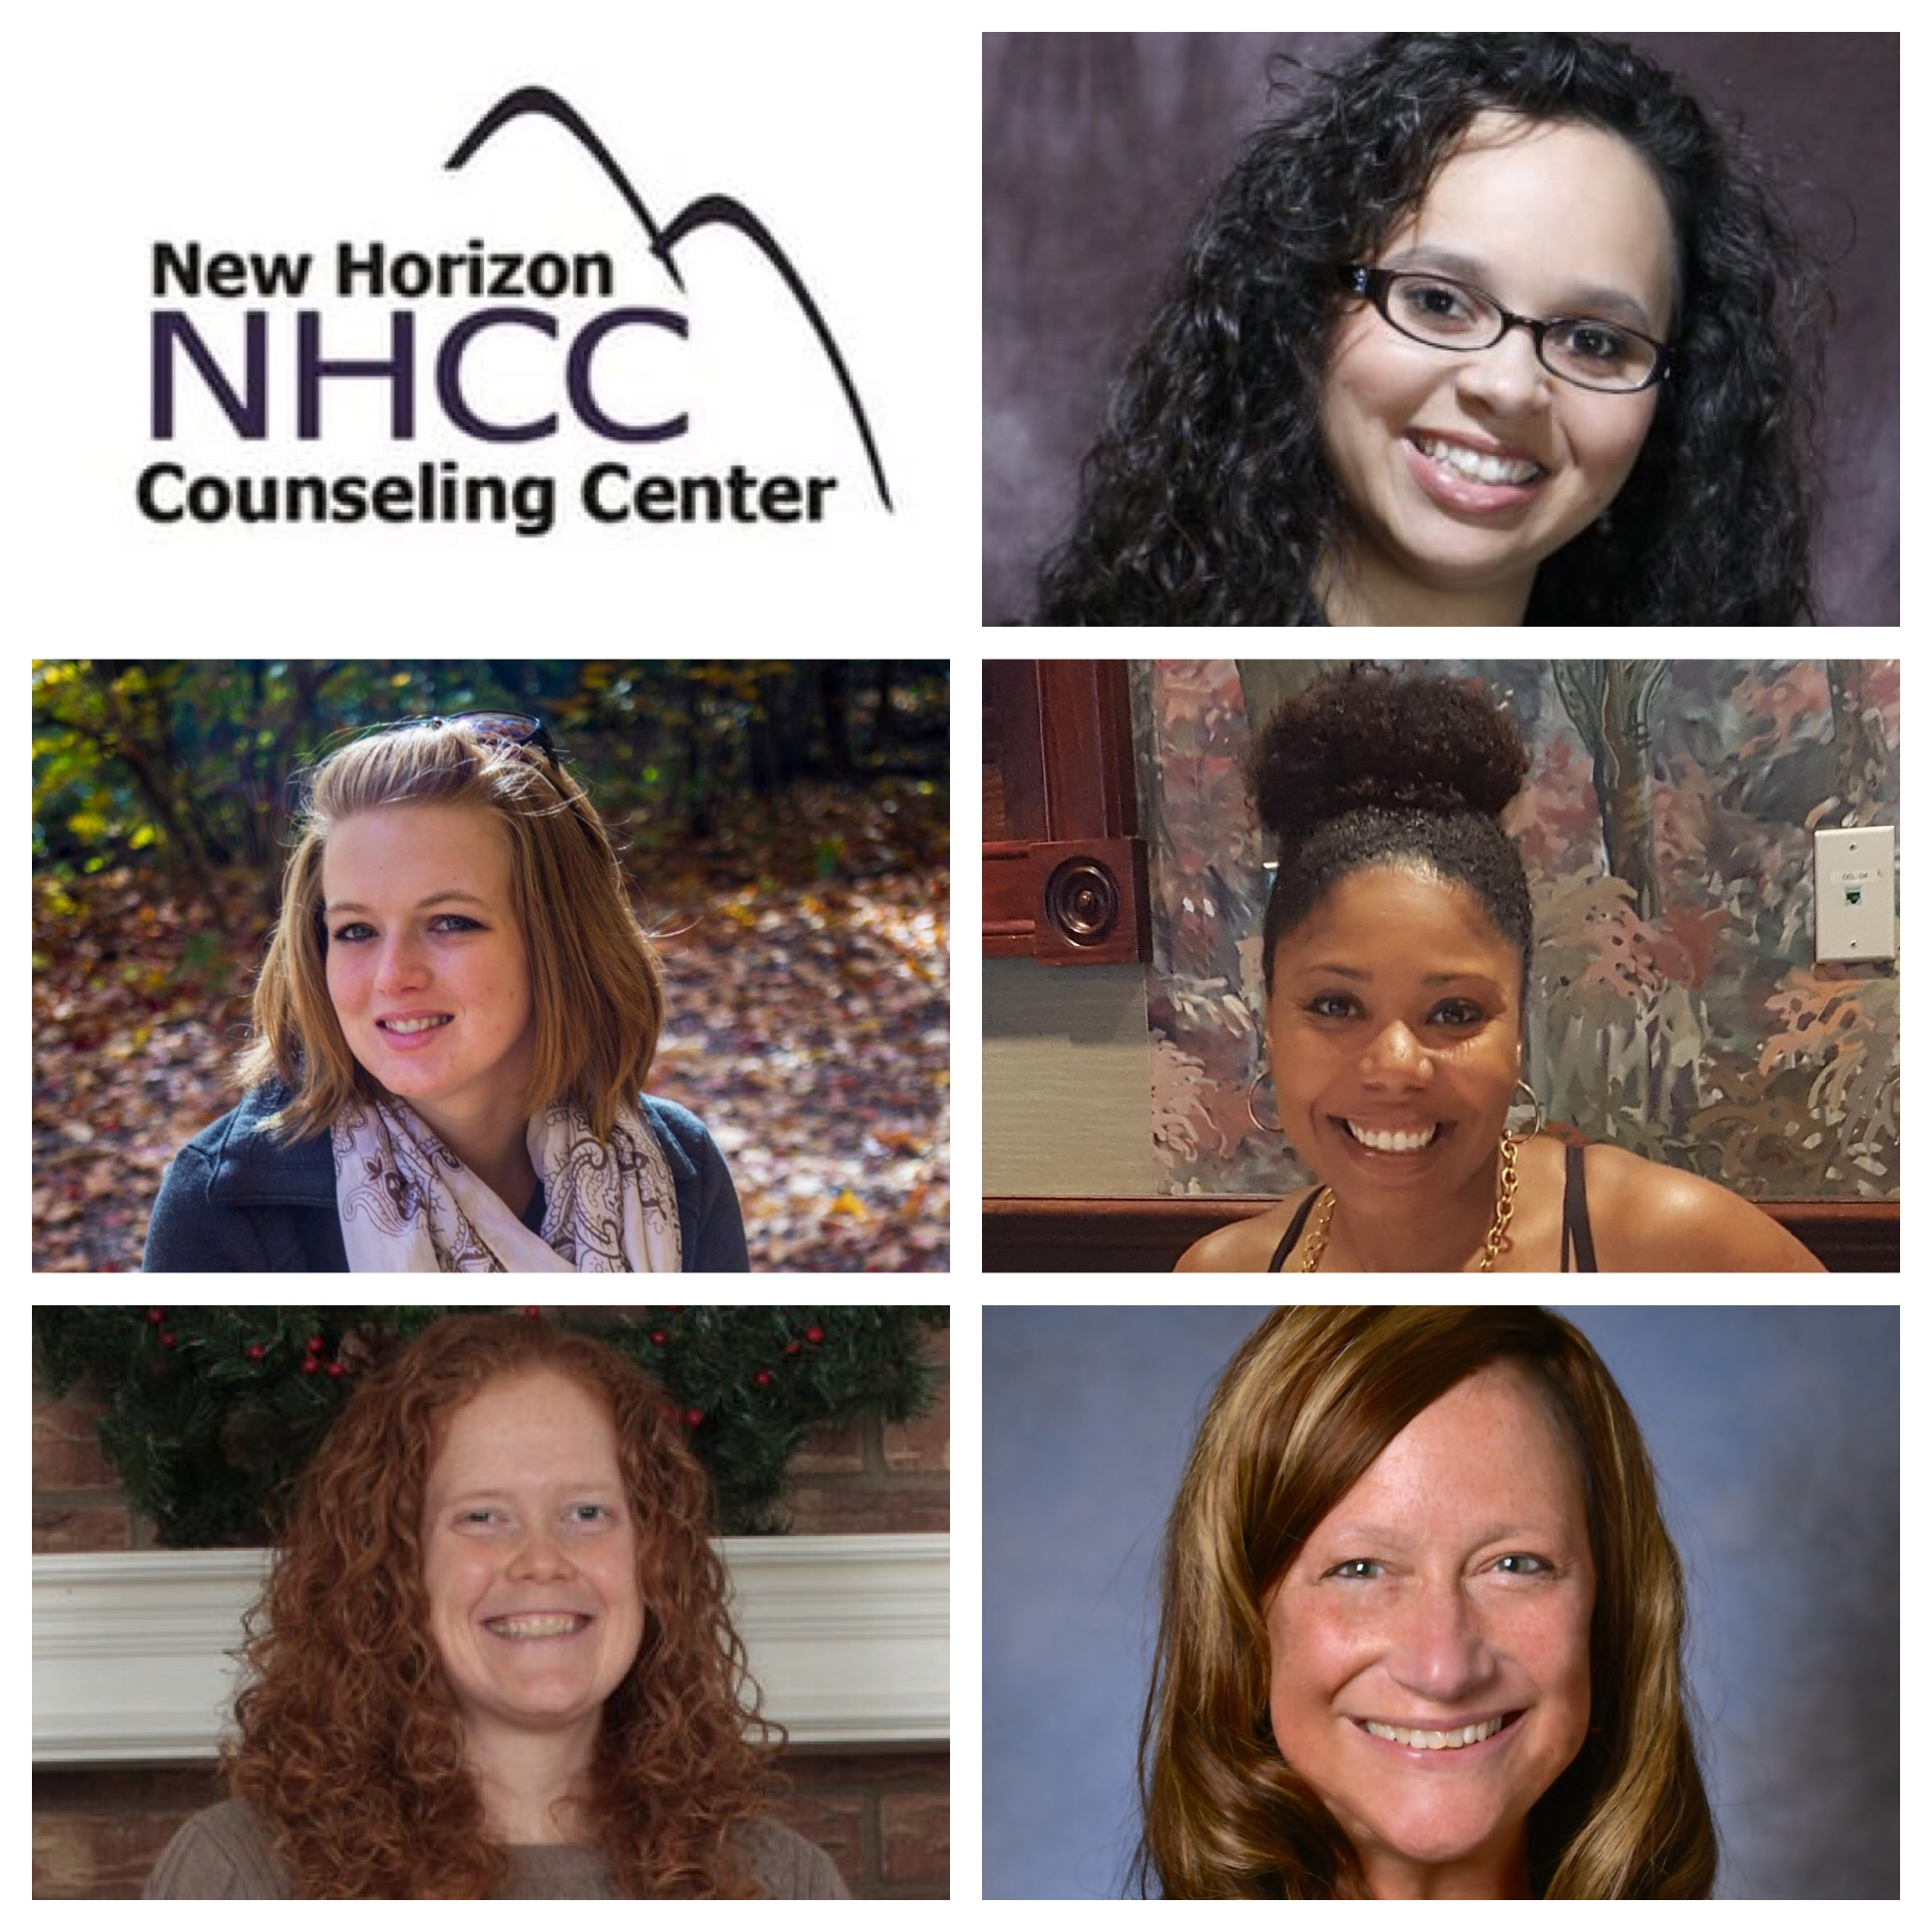 New Horizon Counseling Center NRH, Counselor/Therapist